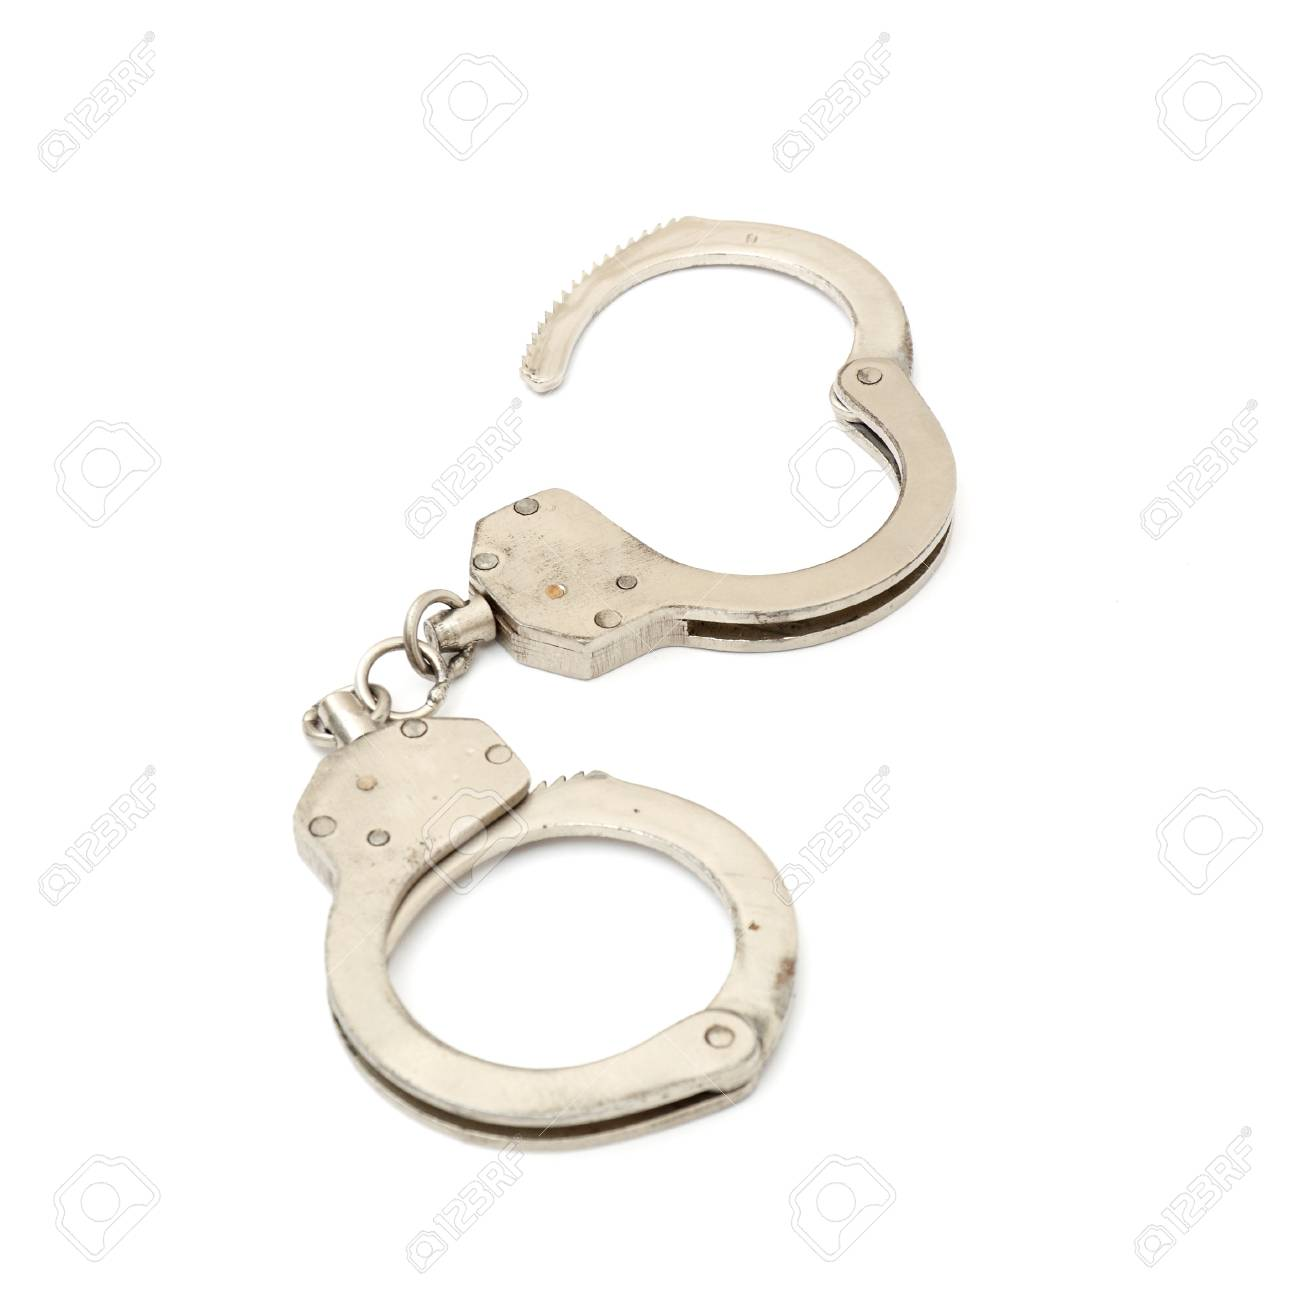 handcuffs are opened Stock Photo - 8814193